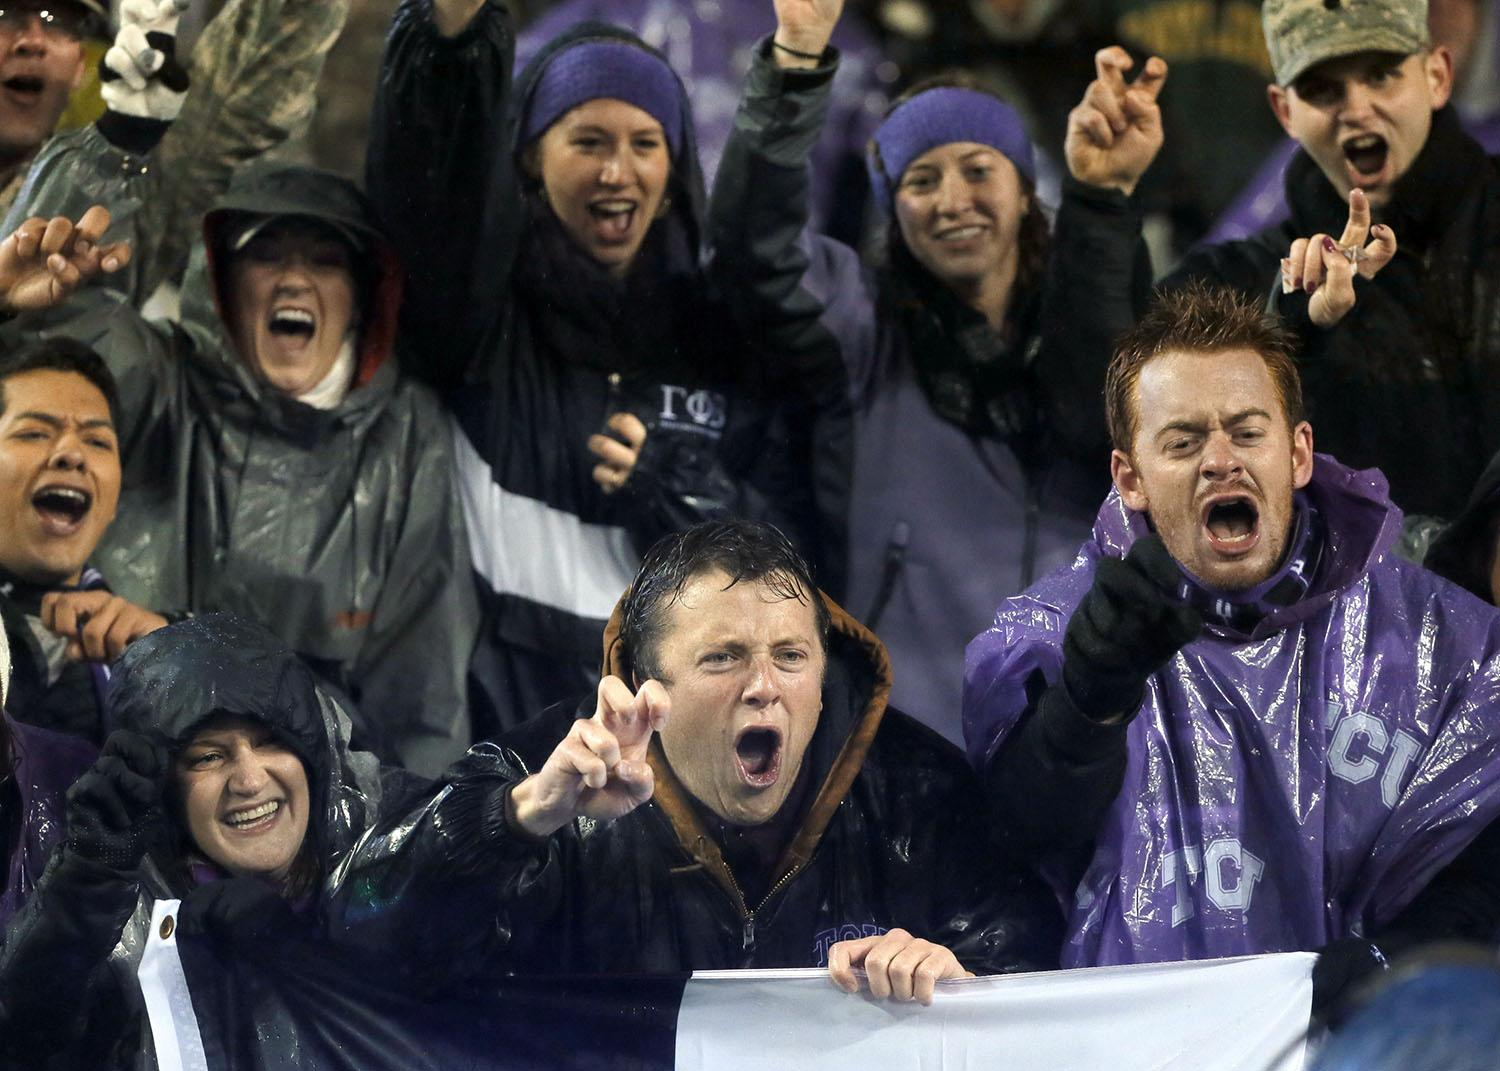 TCU fans cheer for their team during the first half of an NCAA college football game against Baylor, Friday, Nov. 27, 2015, in Fort Worth, Texas. (AP Photo/Tony Gutierrez)